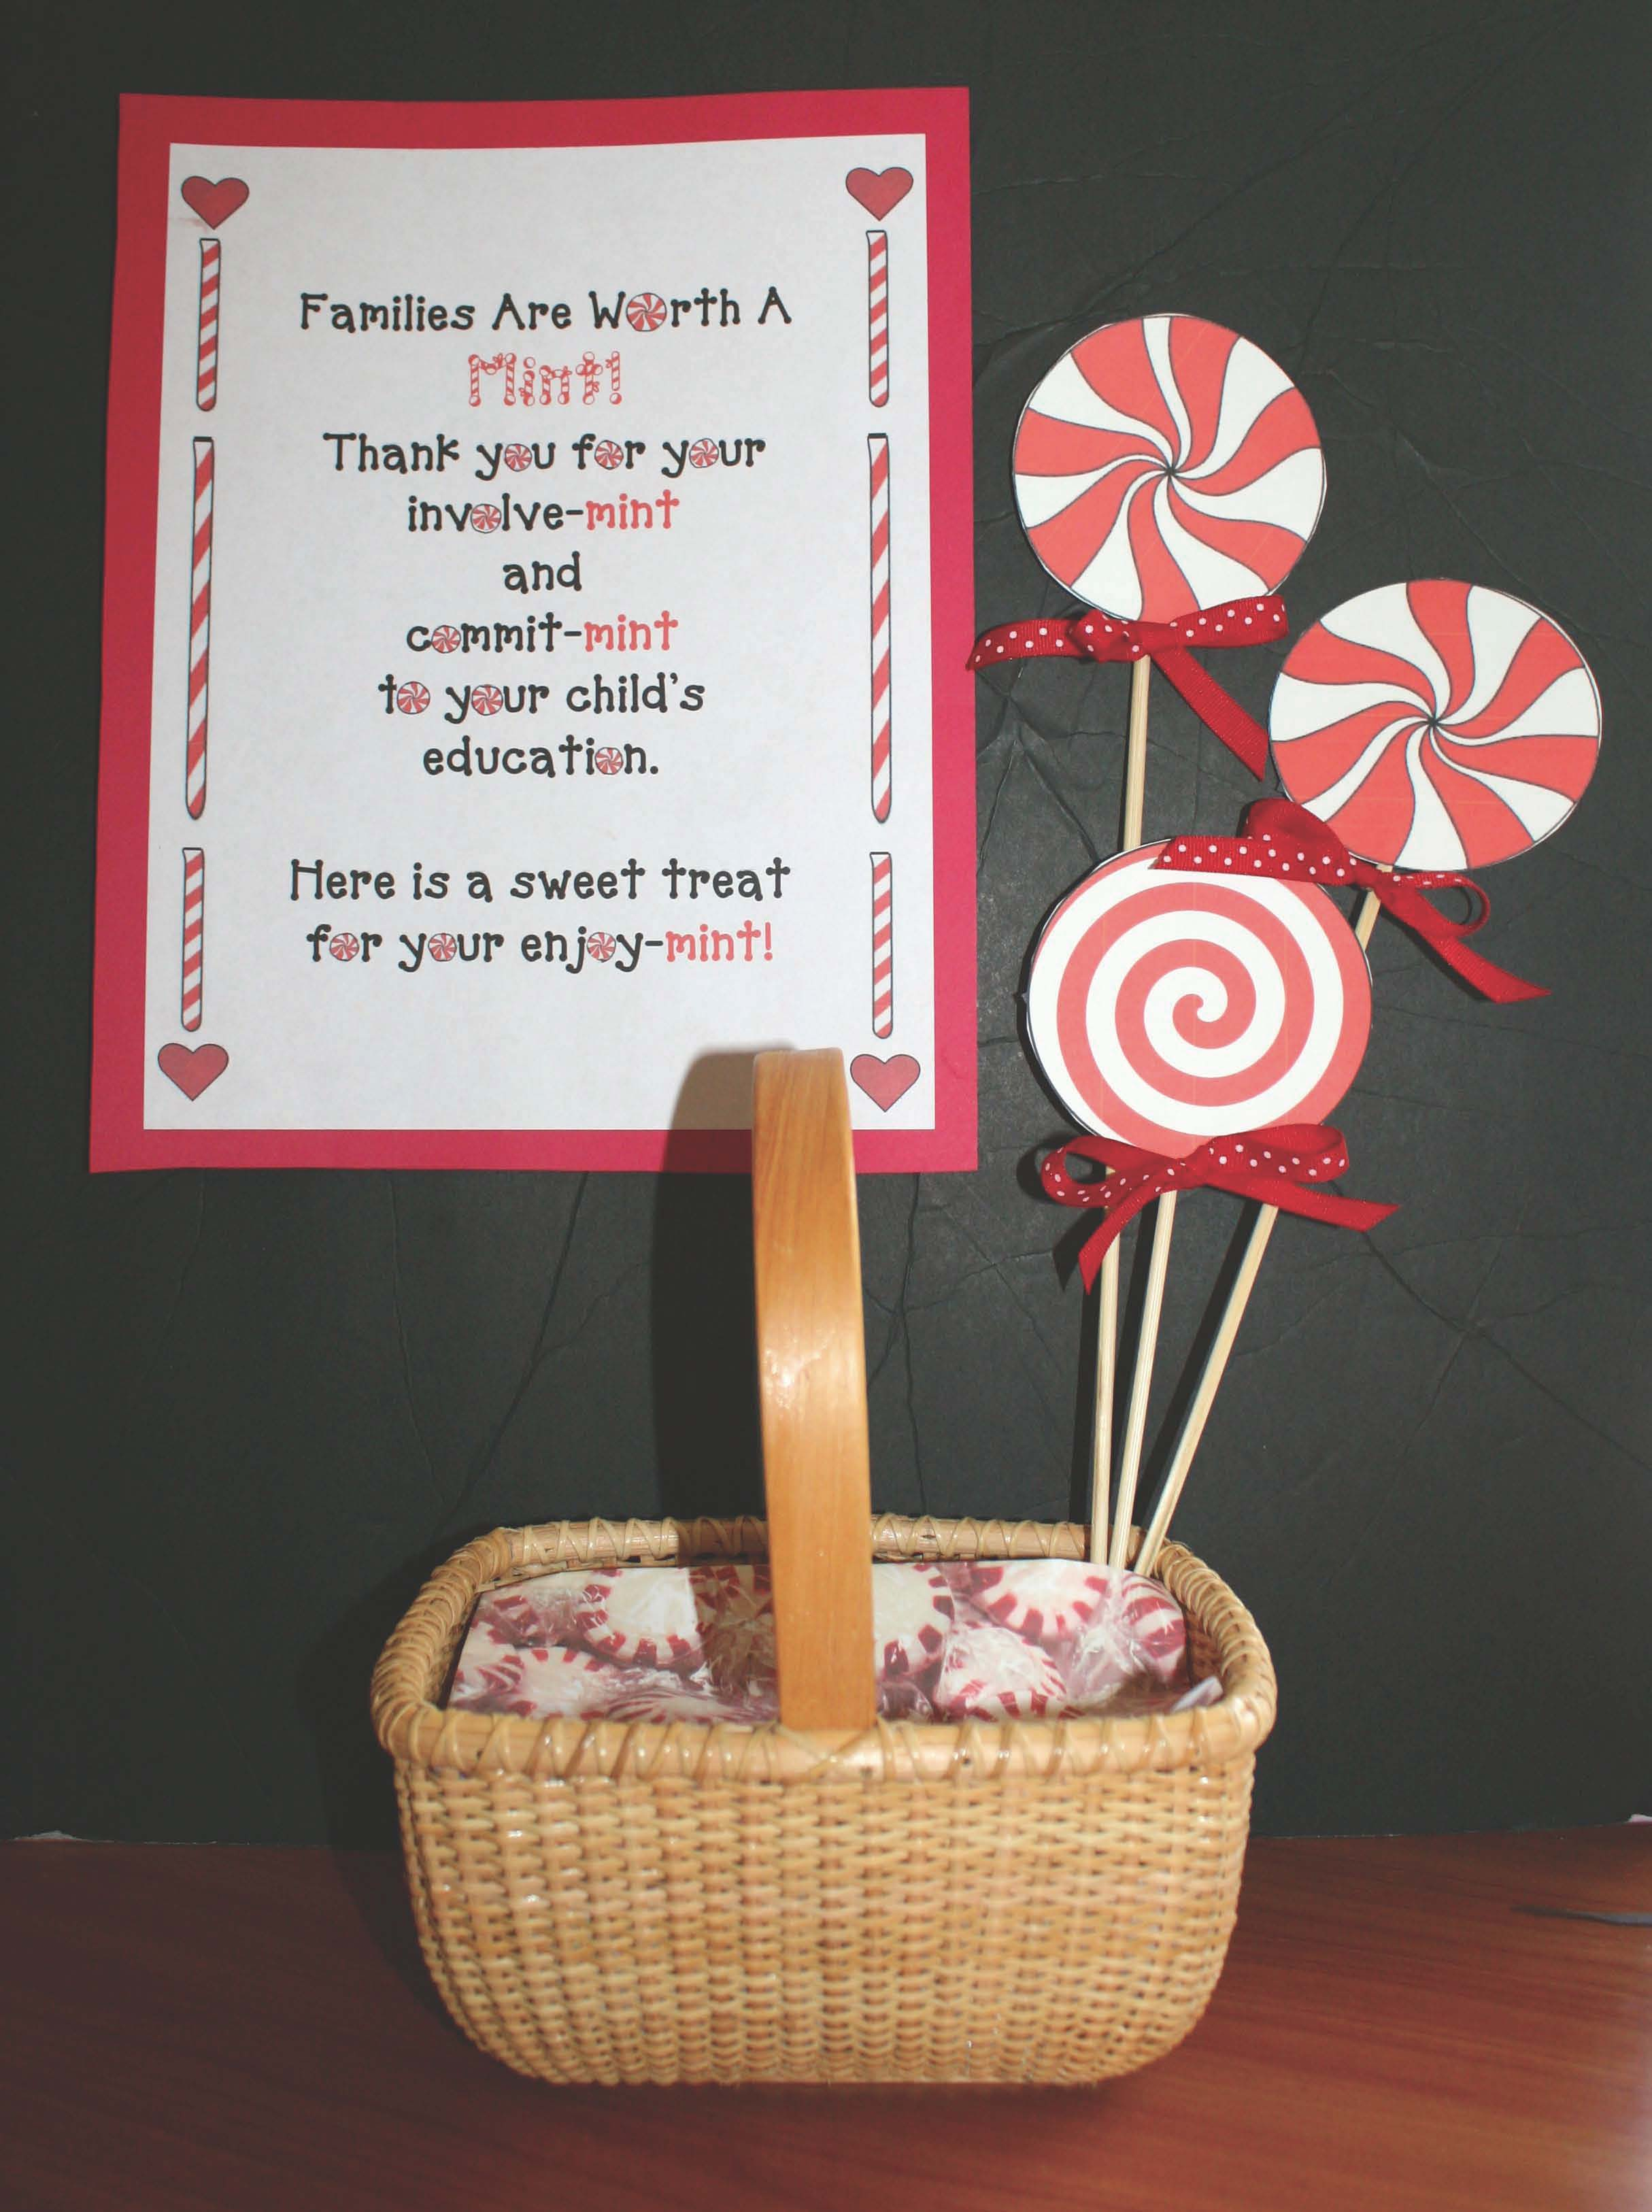 open house ideas, parent teacher conferences, ideas for parent teacher conferences, ideas for open house, back to school ideas, families are worth a mint, worth a mint sayings, worth a mint poster